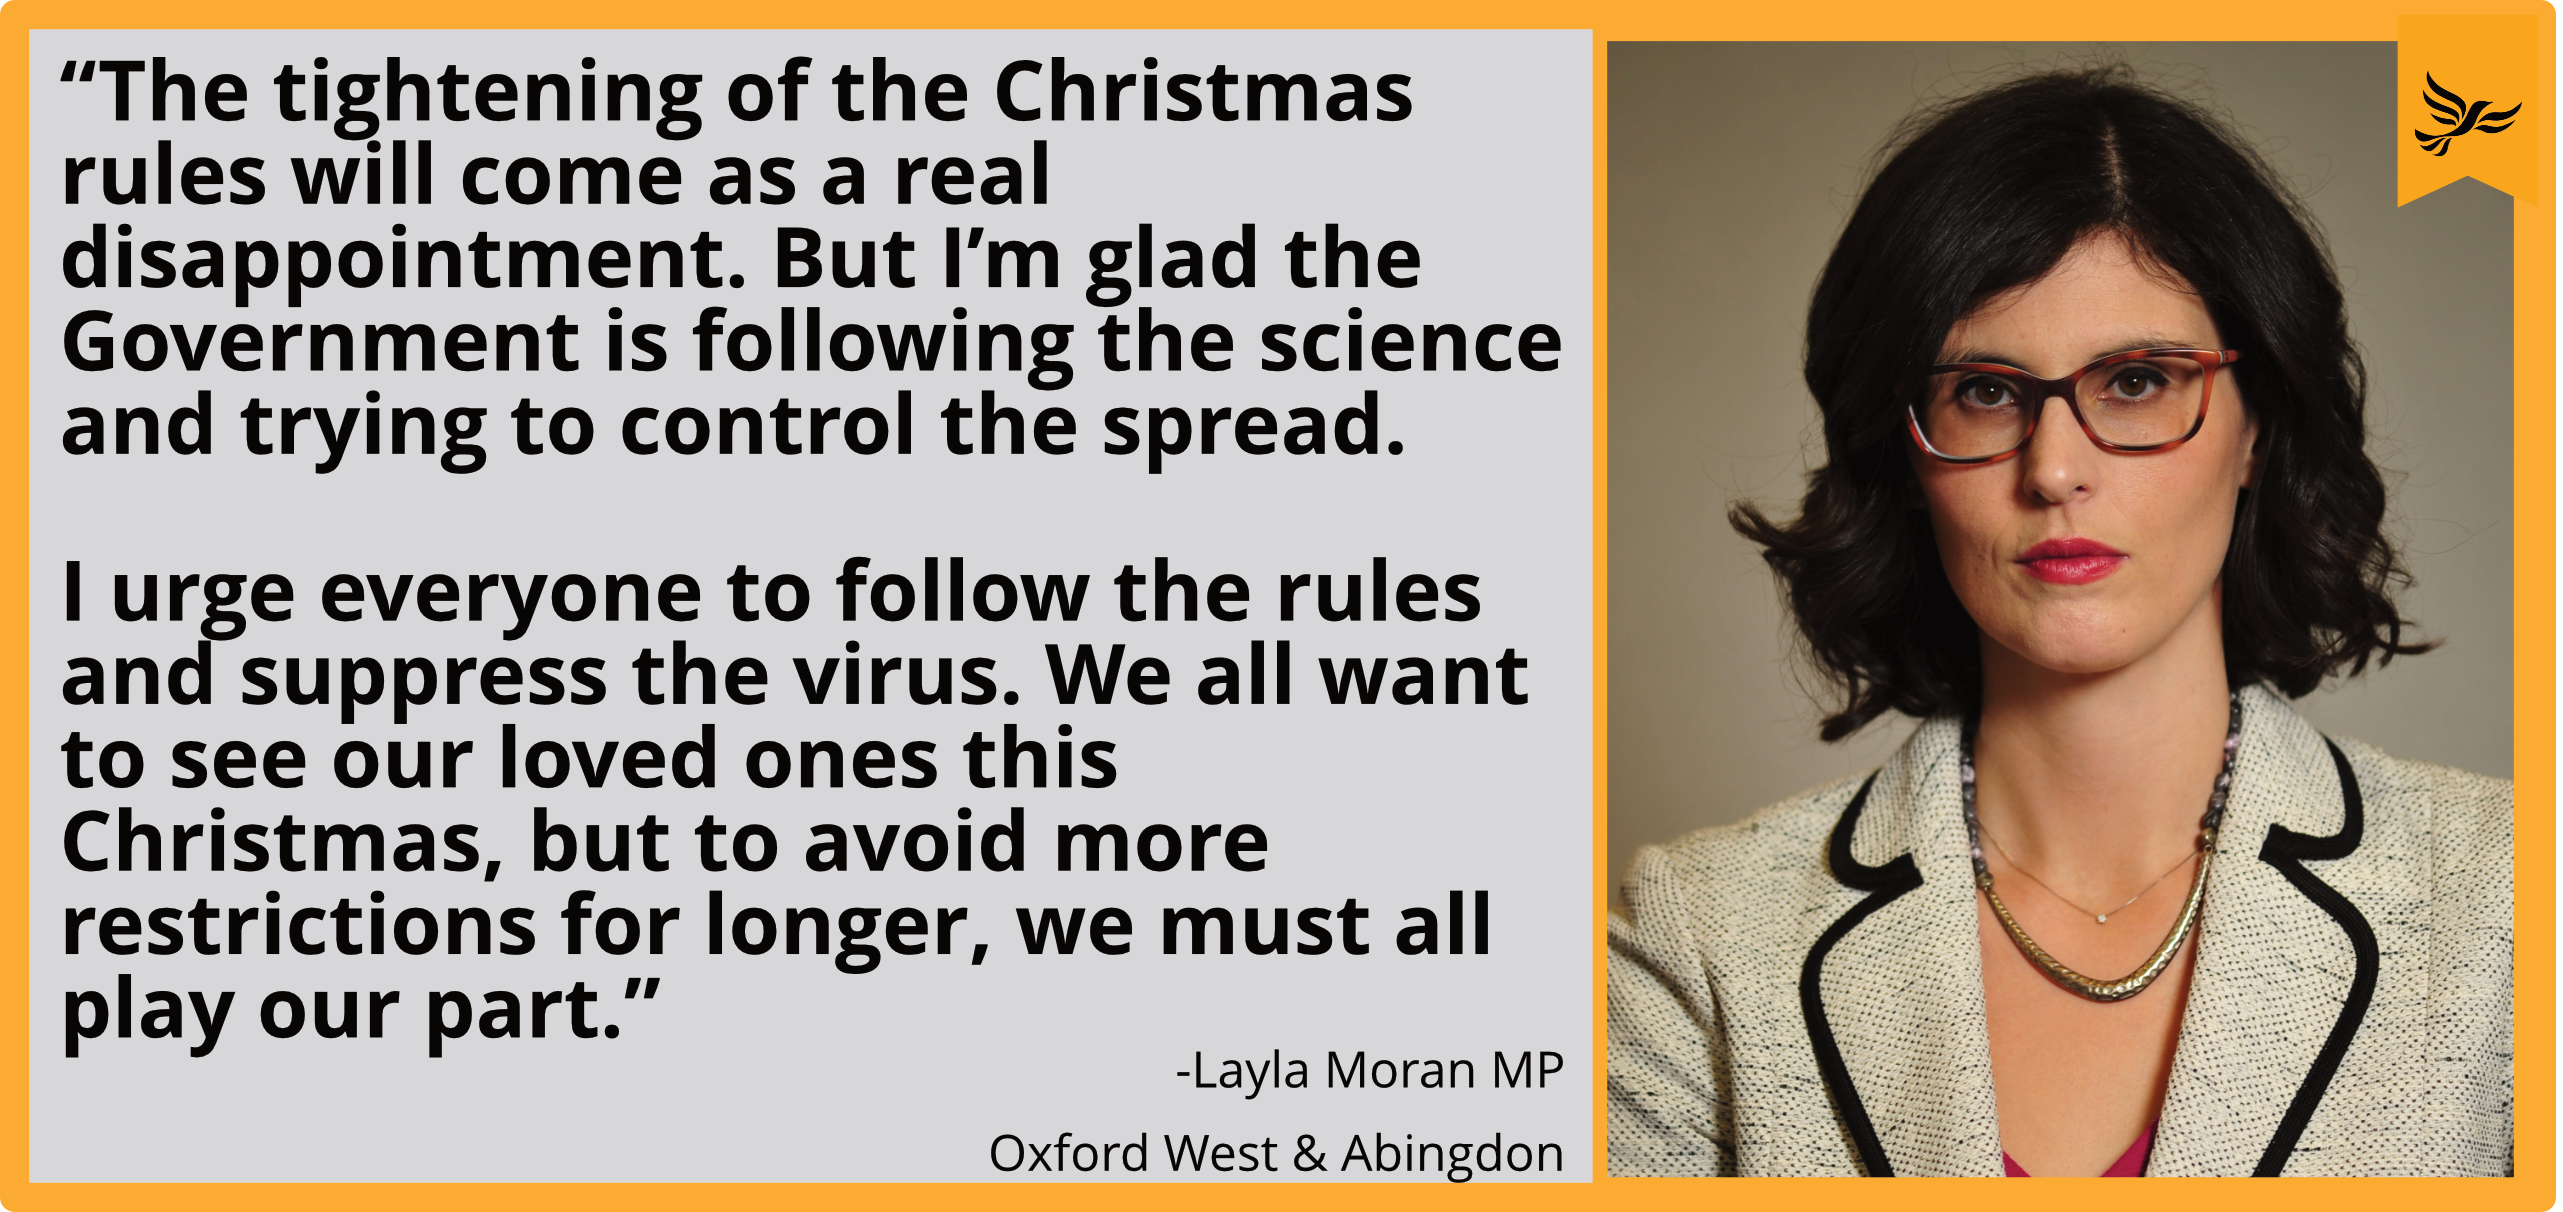 Layla Moran reacts announcement to tightening of rules for Christmas_